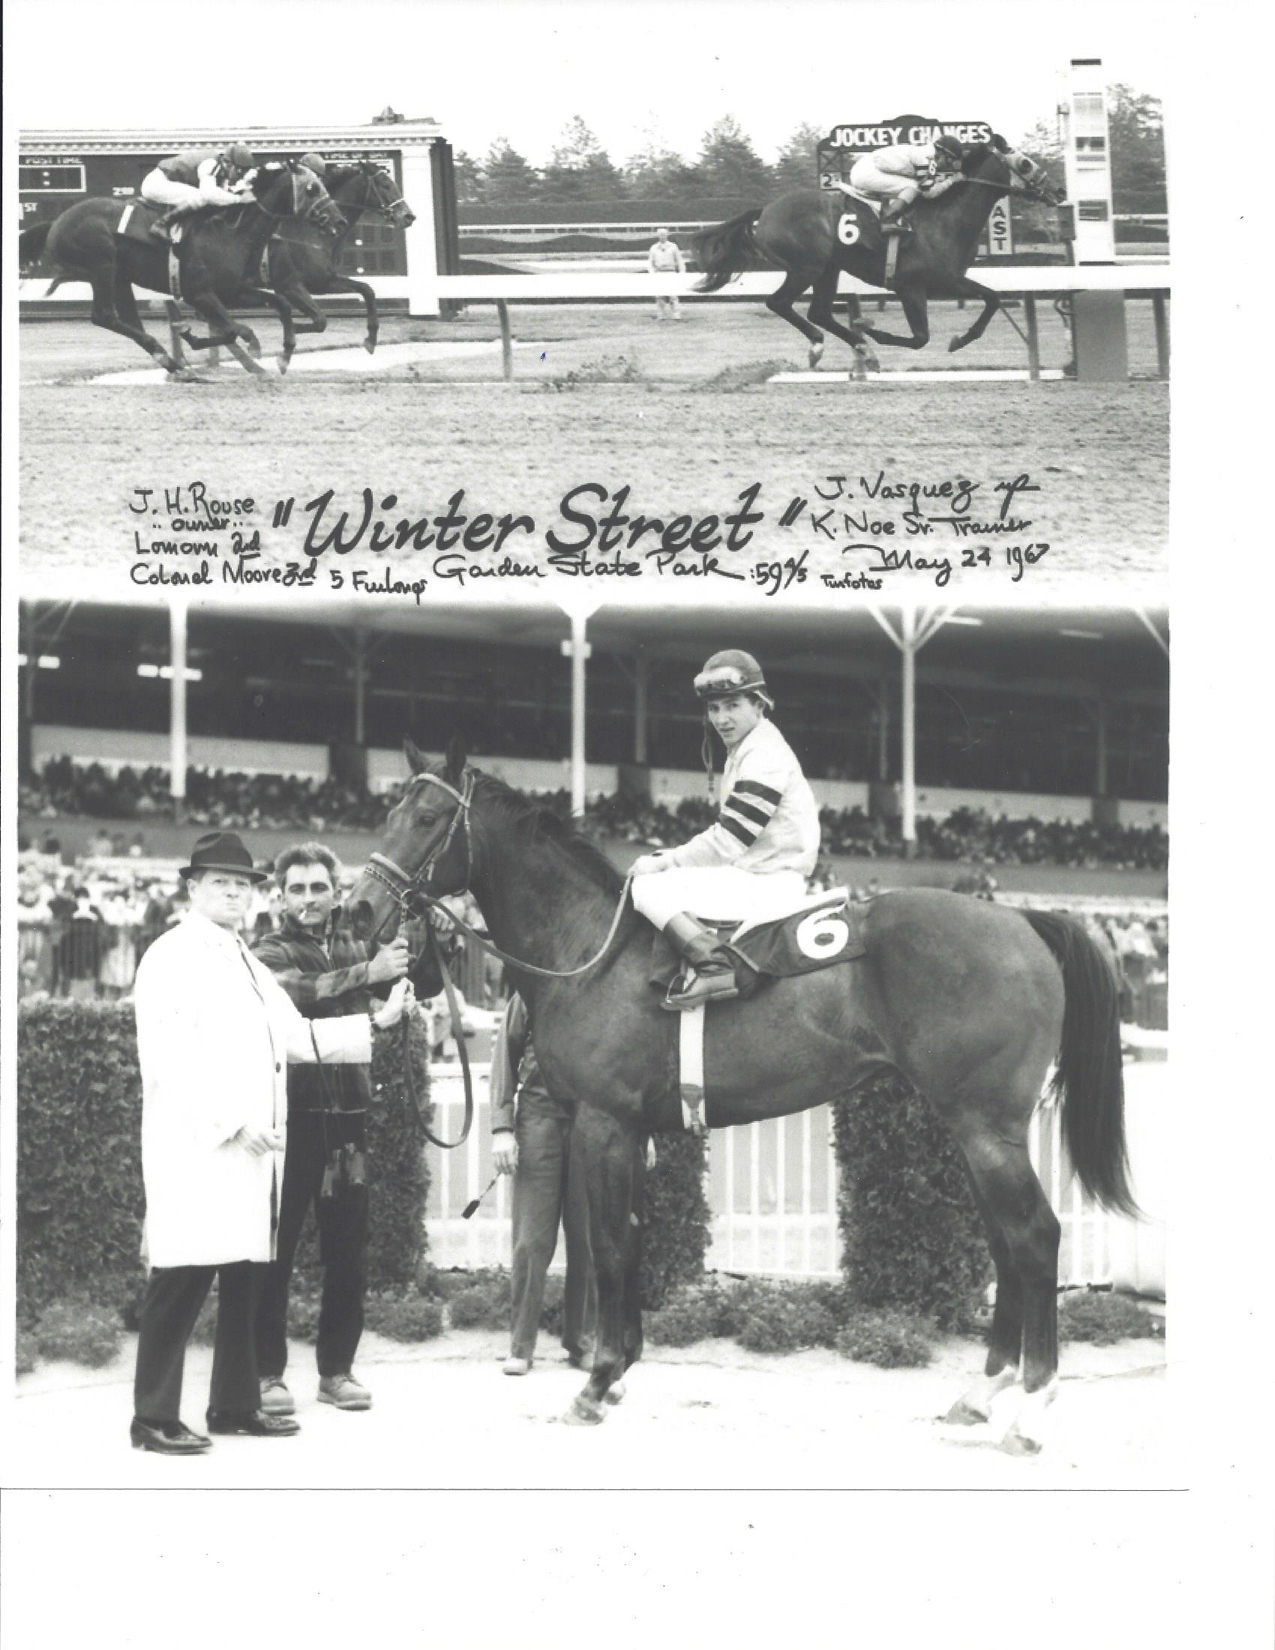 While Howard Rouse did not own any Derby horses, he did have a few winners, including Winter Street,who won a Garden State Park (N.J.) race in 1967. The horse was named after the main road through Midway, U.S. 62, or Winter Street, where he and Honeywood lived. Howard is not in the picture above, because he usually shunned the winner's circle.